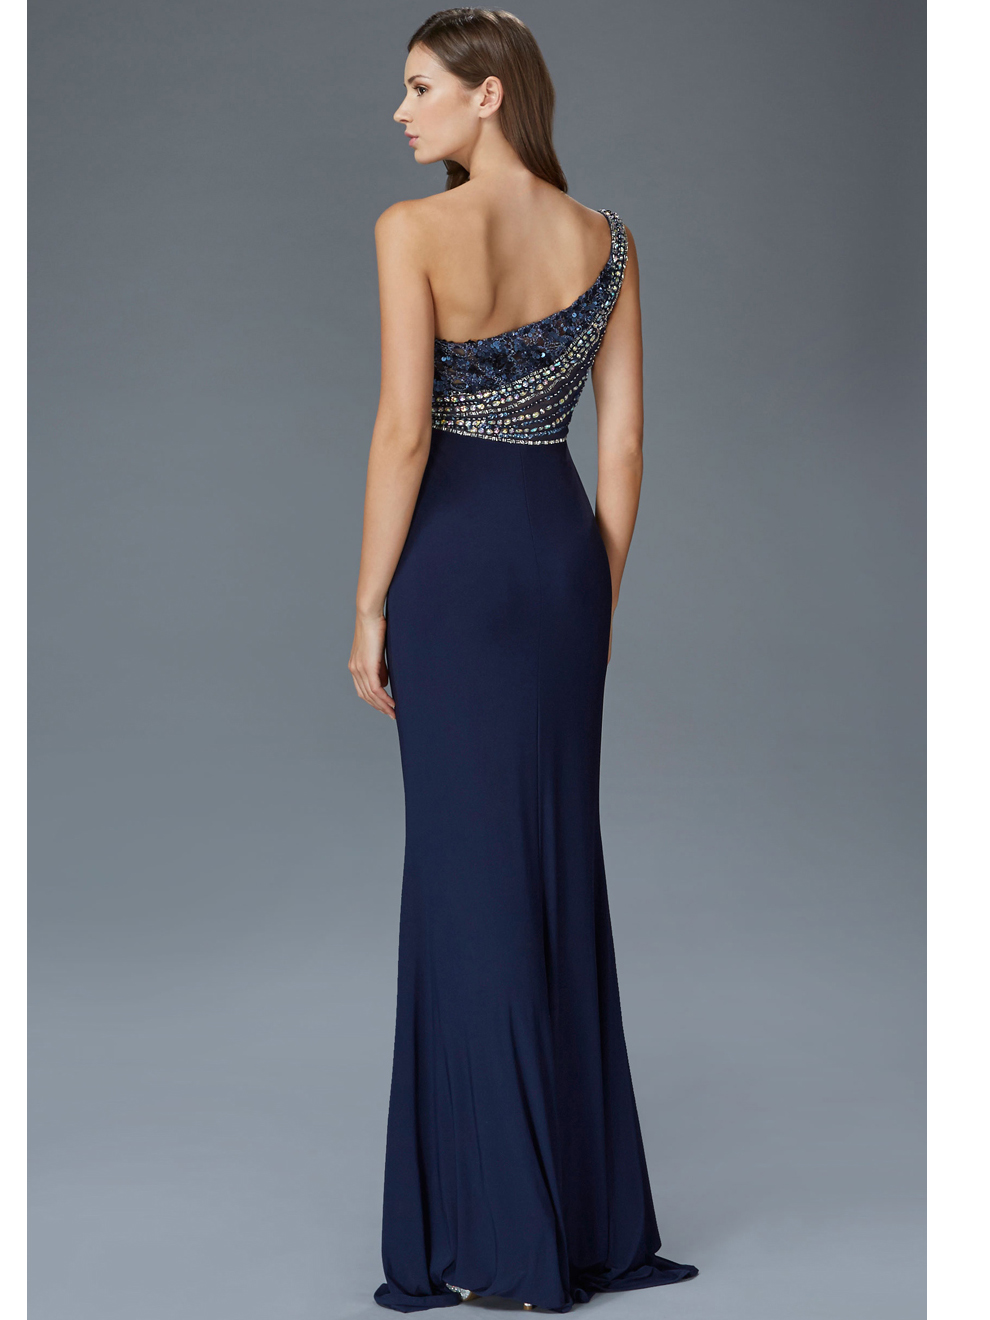 One Shoulder Evening Evening | Sung Boutique L.A.